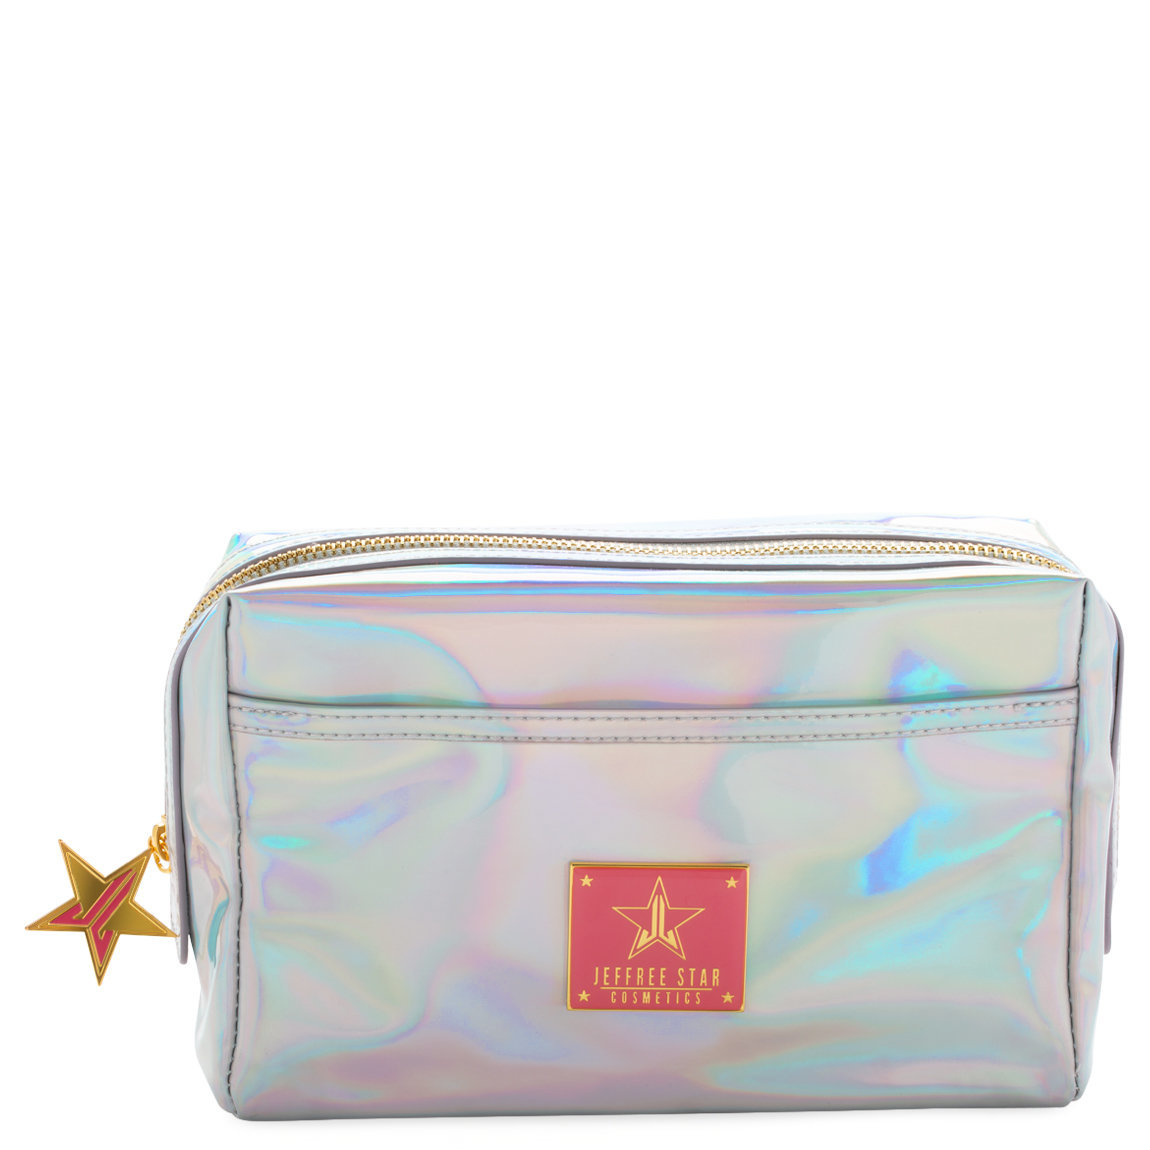 Jeffree Star Cosmetics Makeup Bag Holographic Silver product swatch.